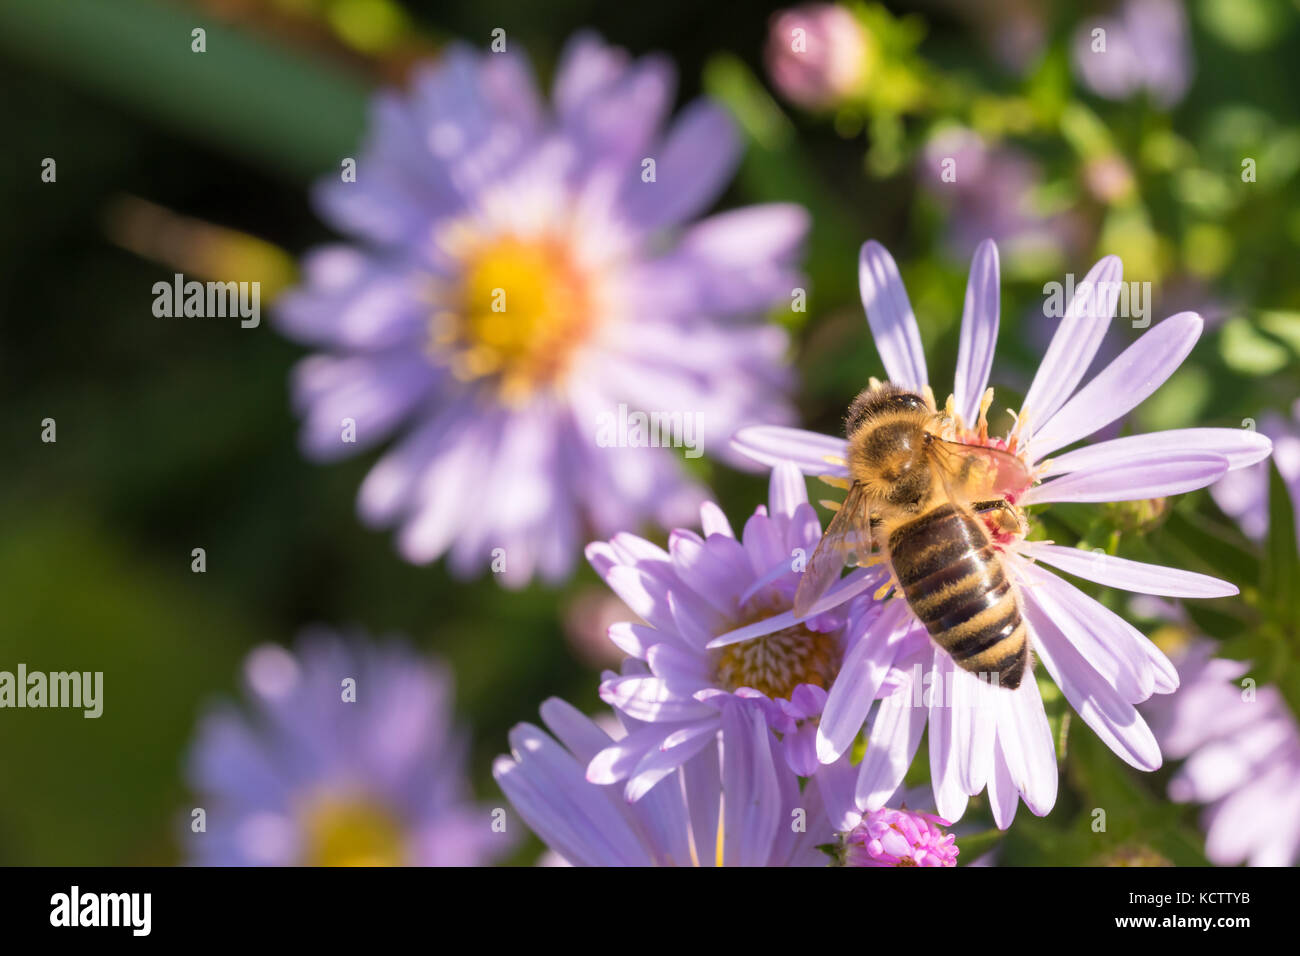 The honey bee sitting on a flower (Aster amellus) and feeding on nectar.  Close-up with selective focus. Stock Photo